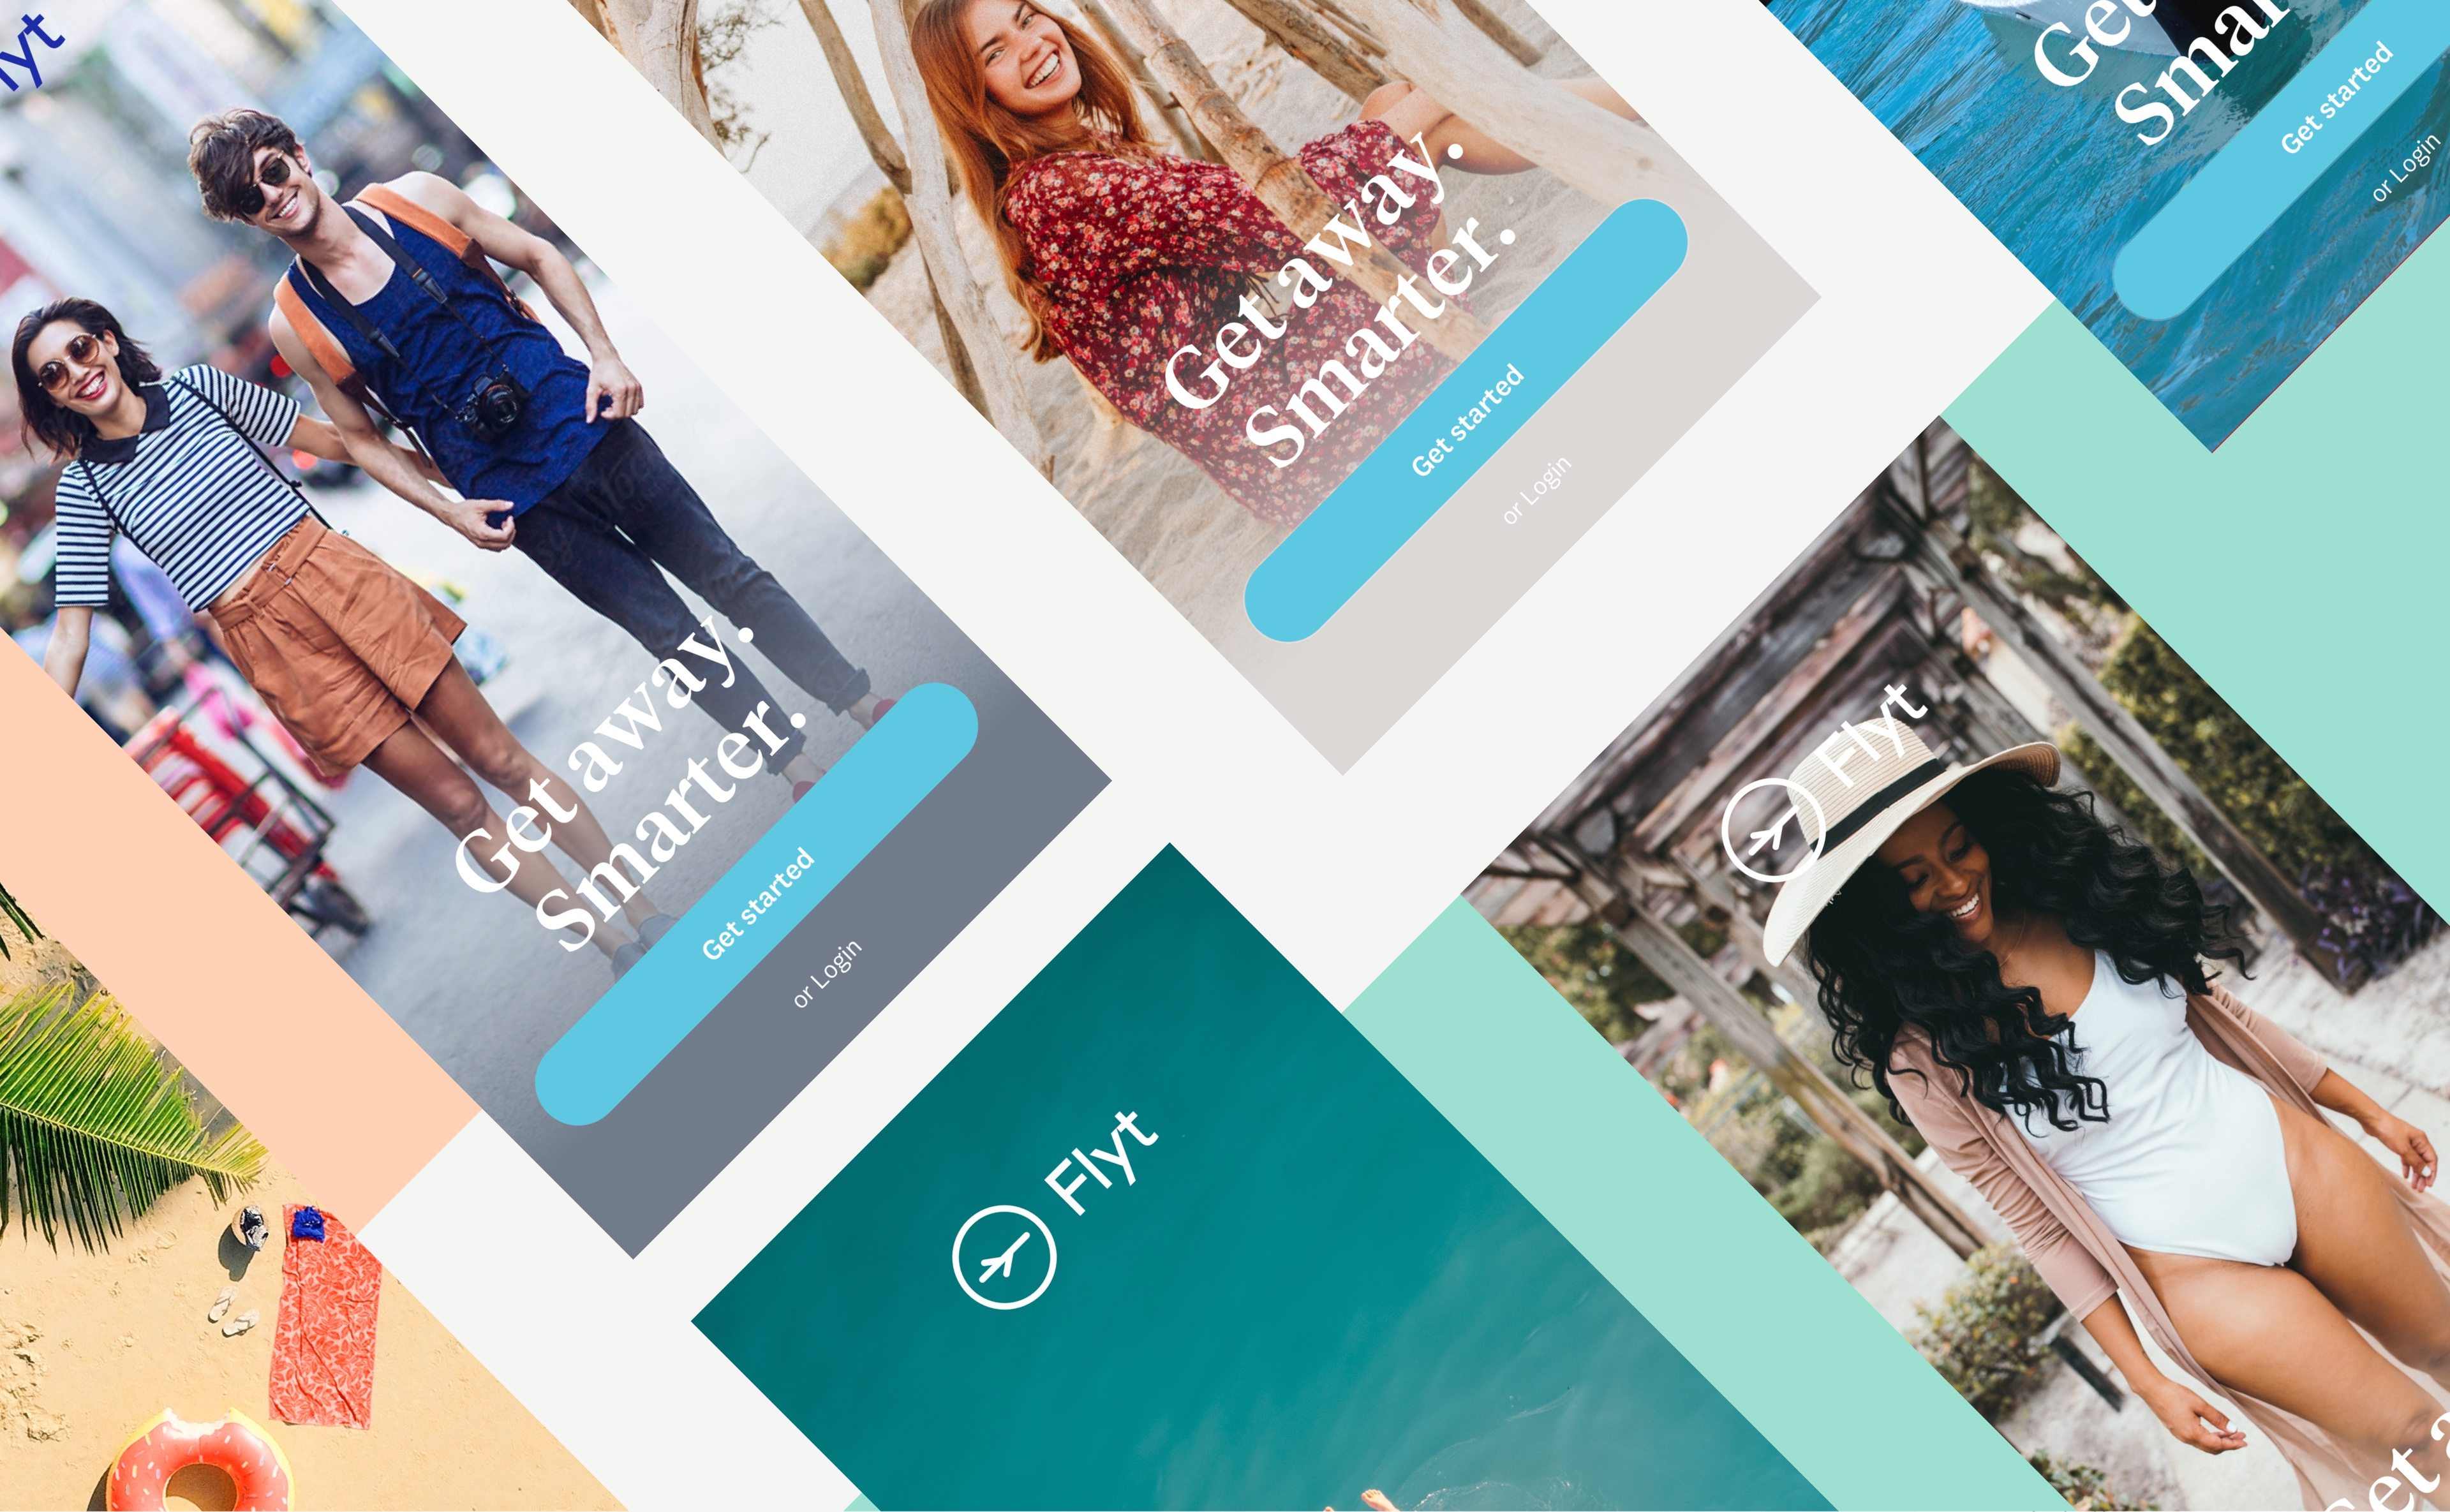 Flyt mobile app design and UX UI design by RocketAir